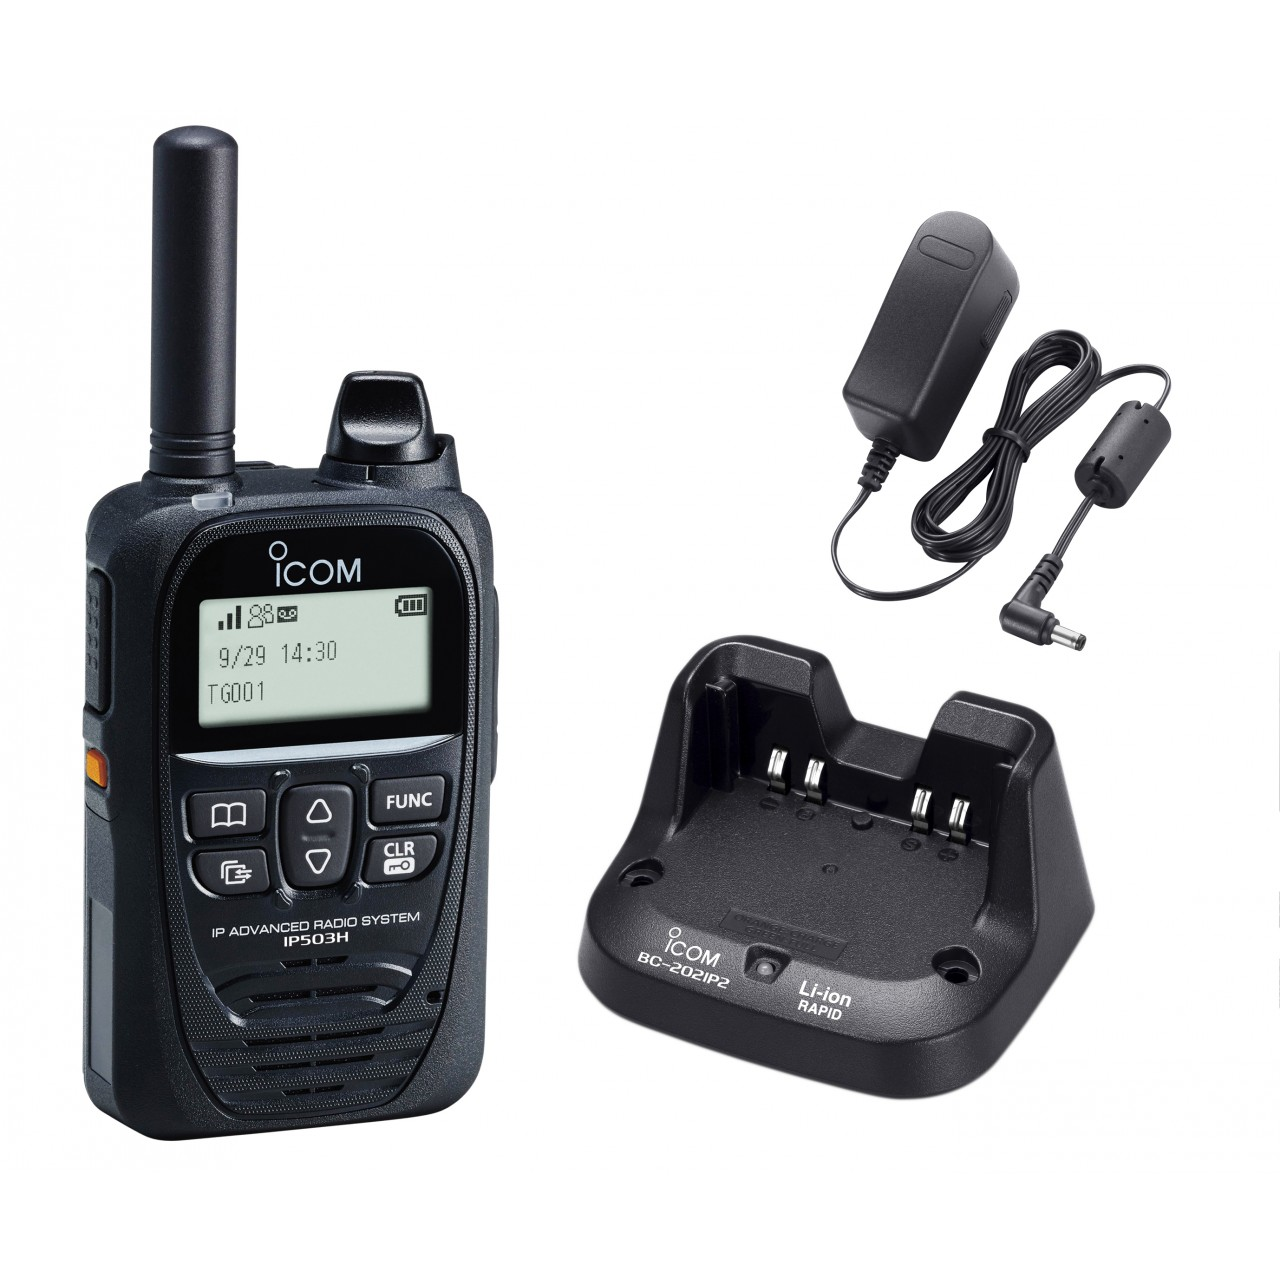 PACK-IP503H Handhelds - ICOM